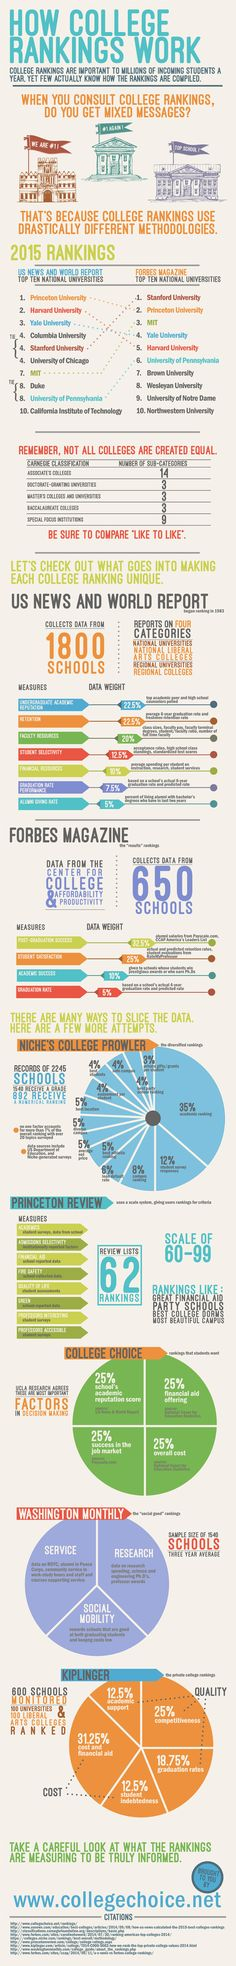 Do college rankings confuse you? Here's an infographic that might help understand the methodology behind the rankings.